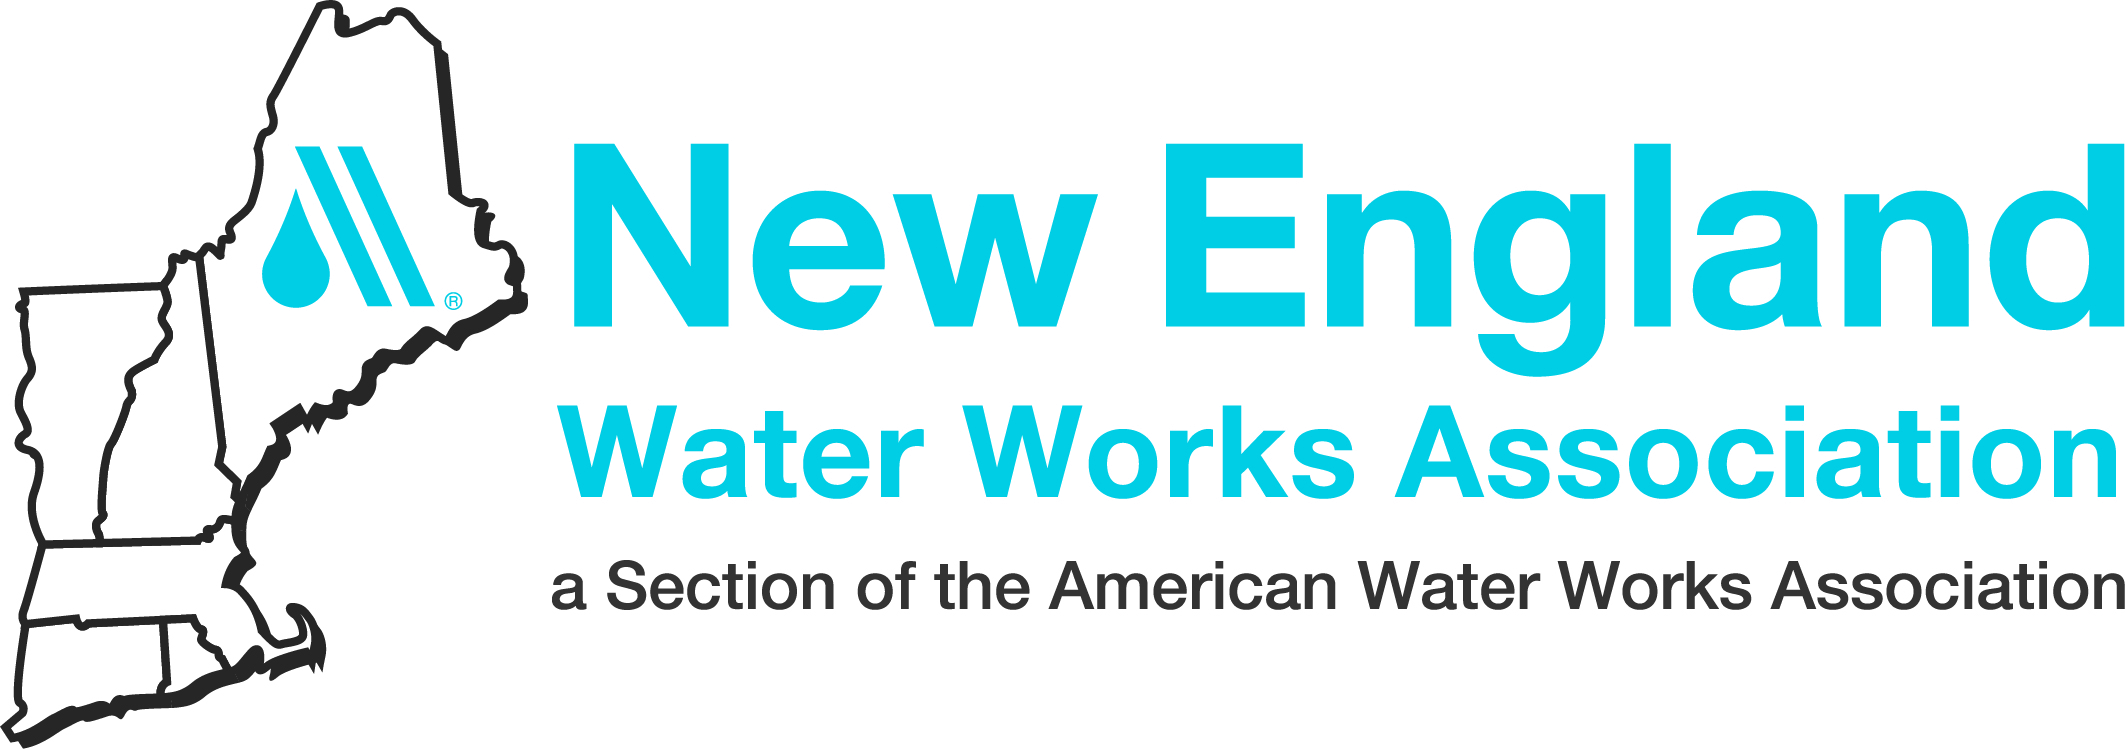 New England Water Works Association